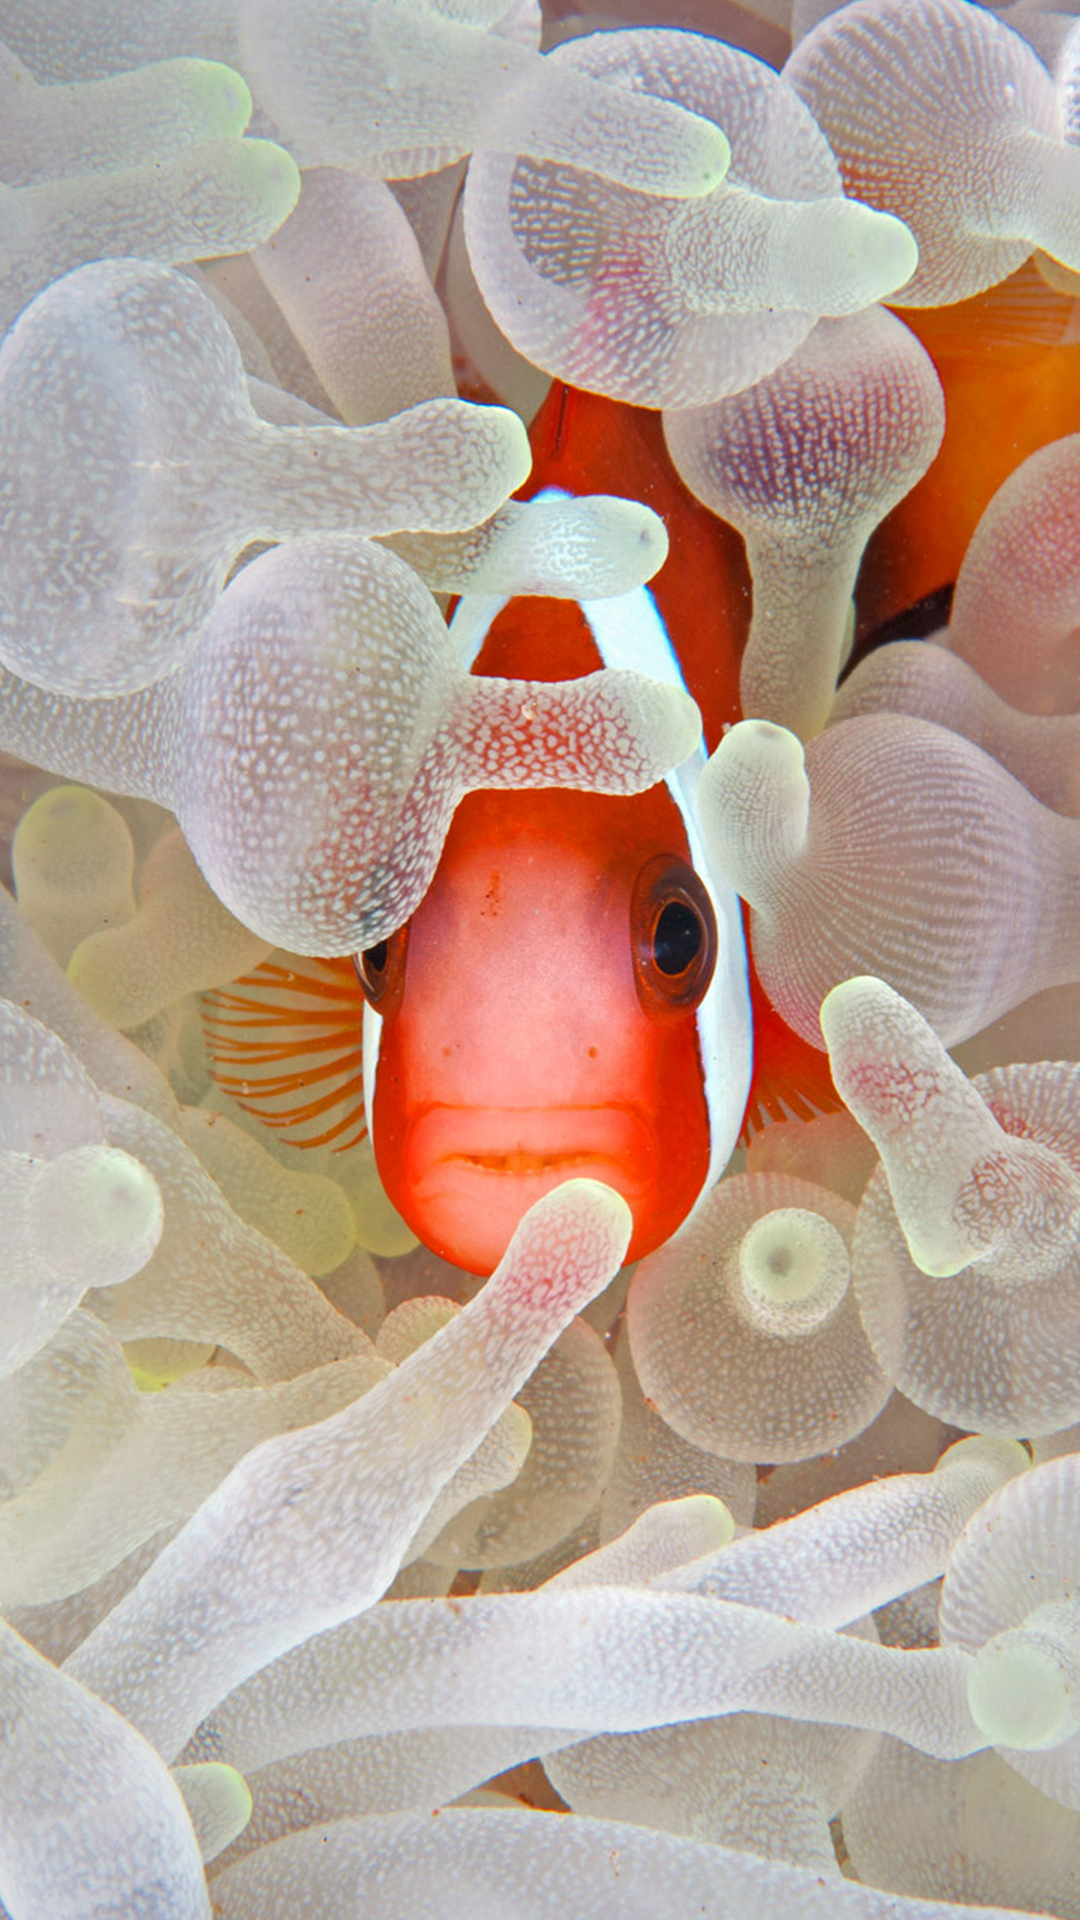 Red and black anemonefish in bleaching anemone in the Lembeh Strait of North Sulawesi, Indonesia ((C) Jeff Yonover/Tandem Stock)